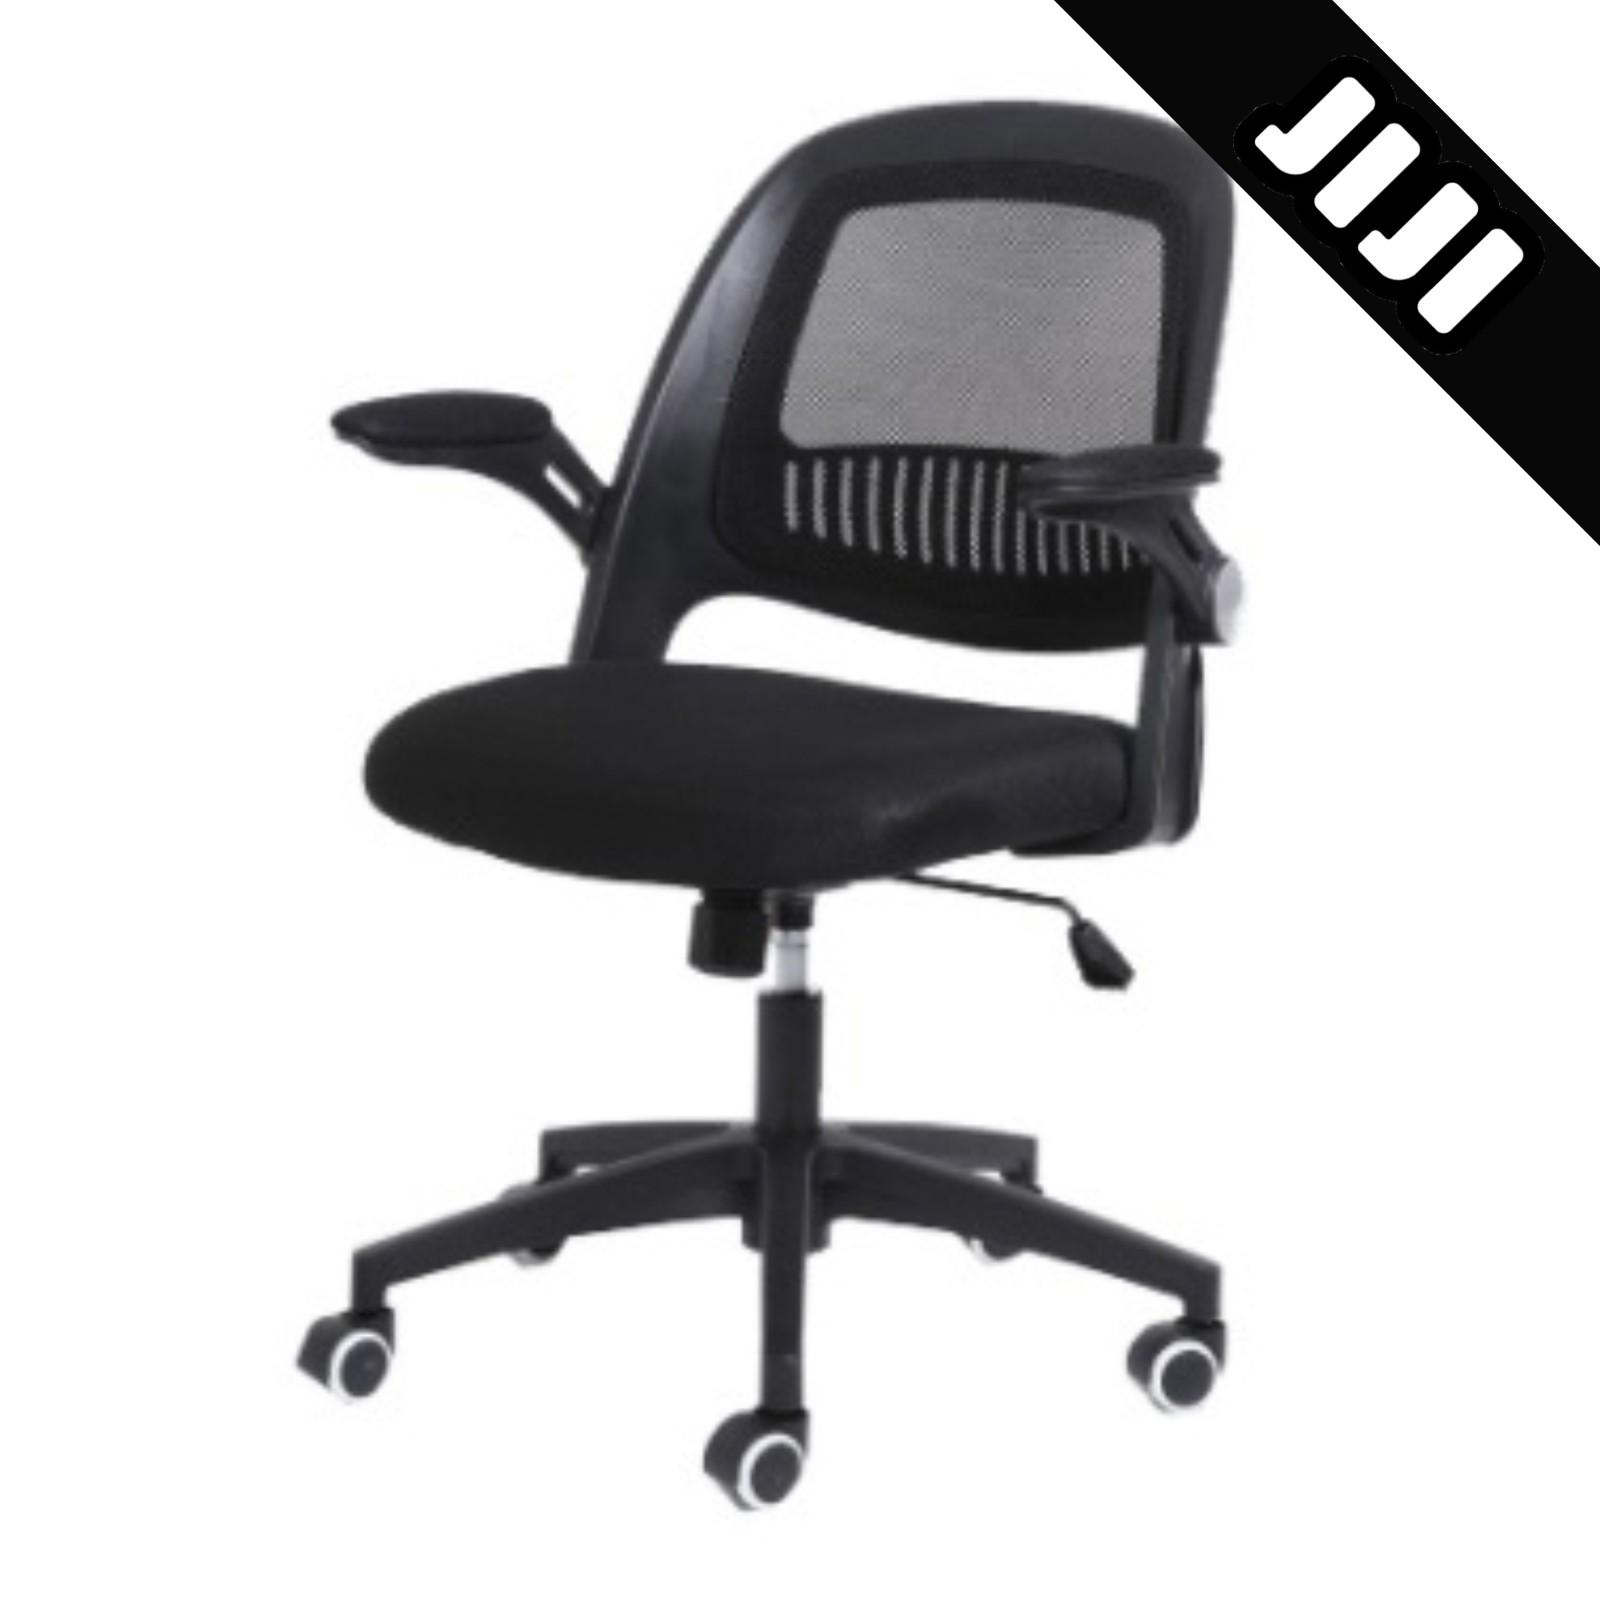 JIJI Assistant Office Chair (Self-Assembly) - Home Office Furniture / Office Chairs / Office Assistant / Comes with instruction manual (SG) Singapore